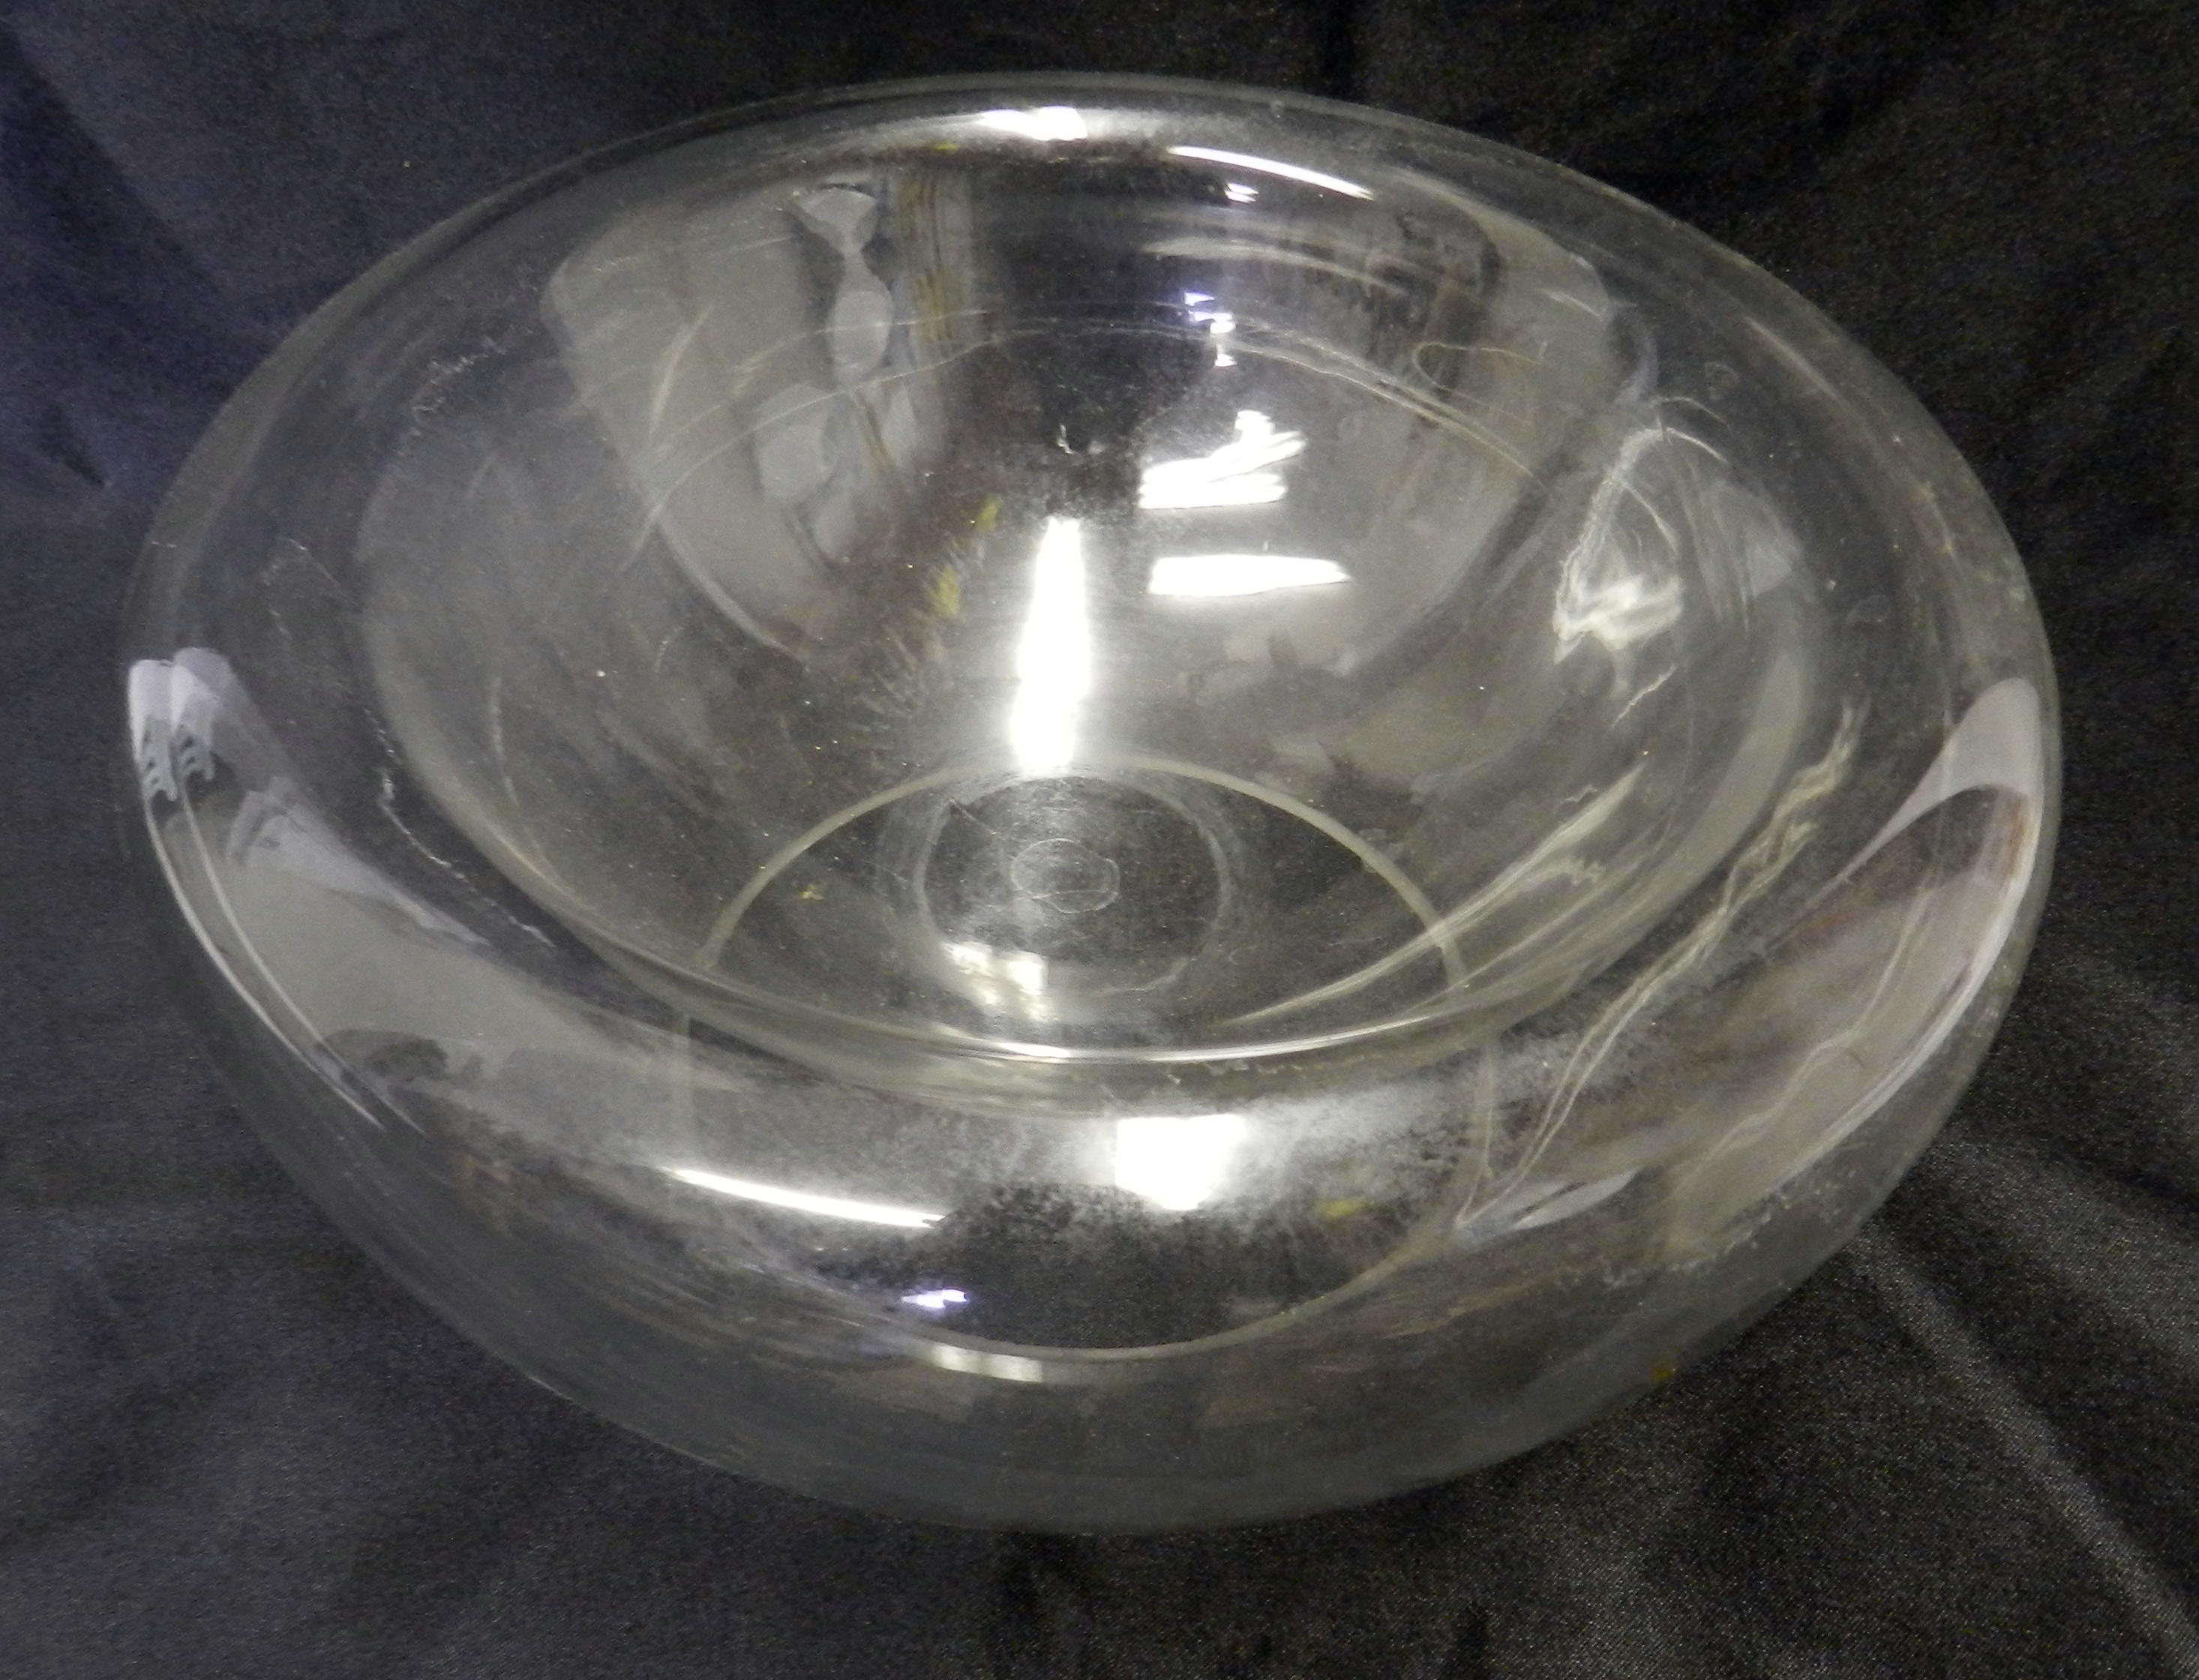 Find great deals on eBay for large glass bowl centerpiece. Shop with confidence.